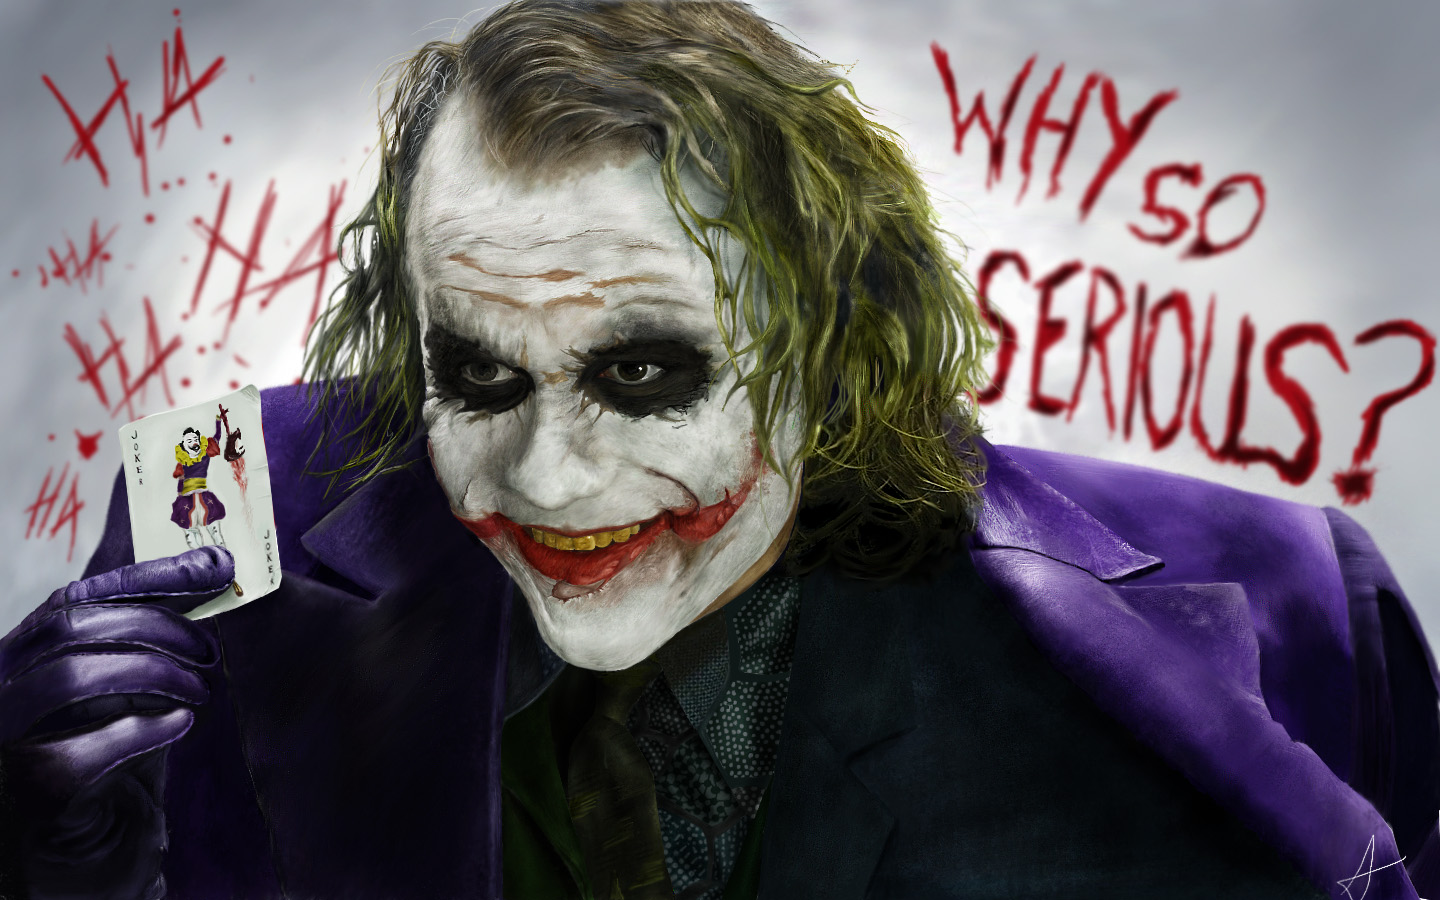 The Joker by DookieAdz